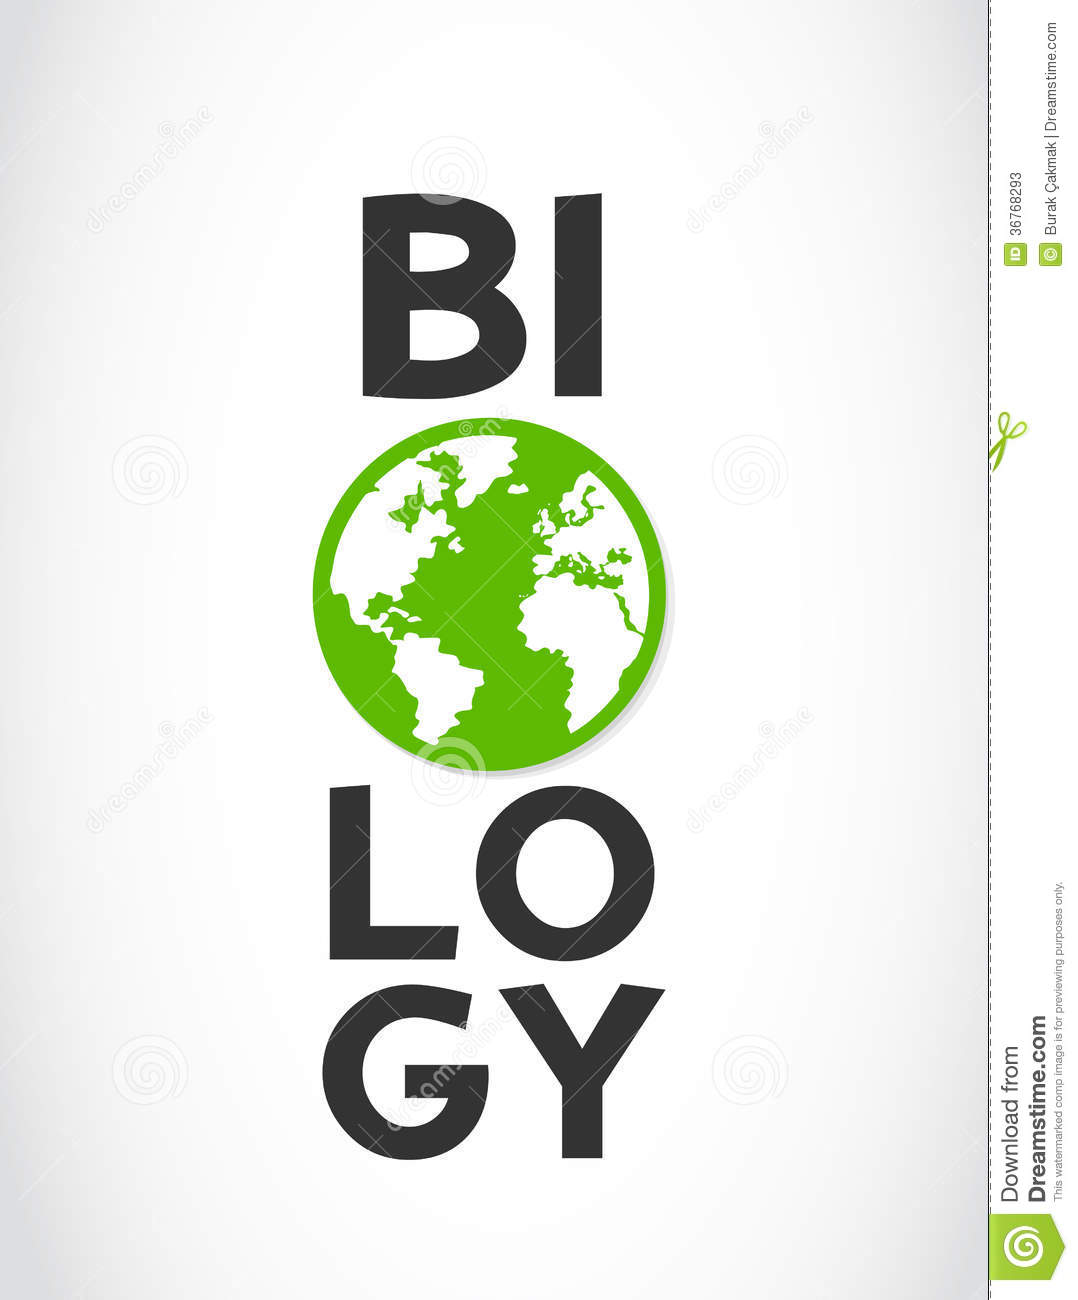 biology concept Biology literally means the study of life there are many different types of living organisms, environments, and combinations of genetic material the science of biology includes all information related to studying living things, but a biologist does not and cannot study every facet of all living things.